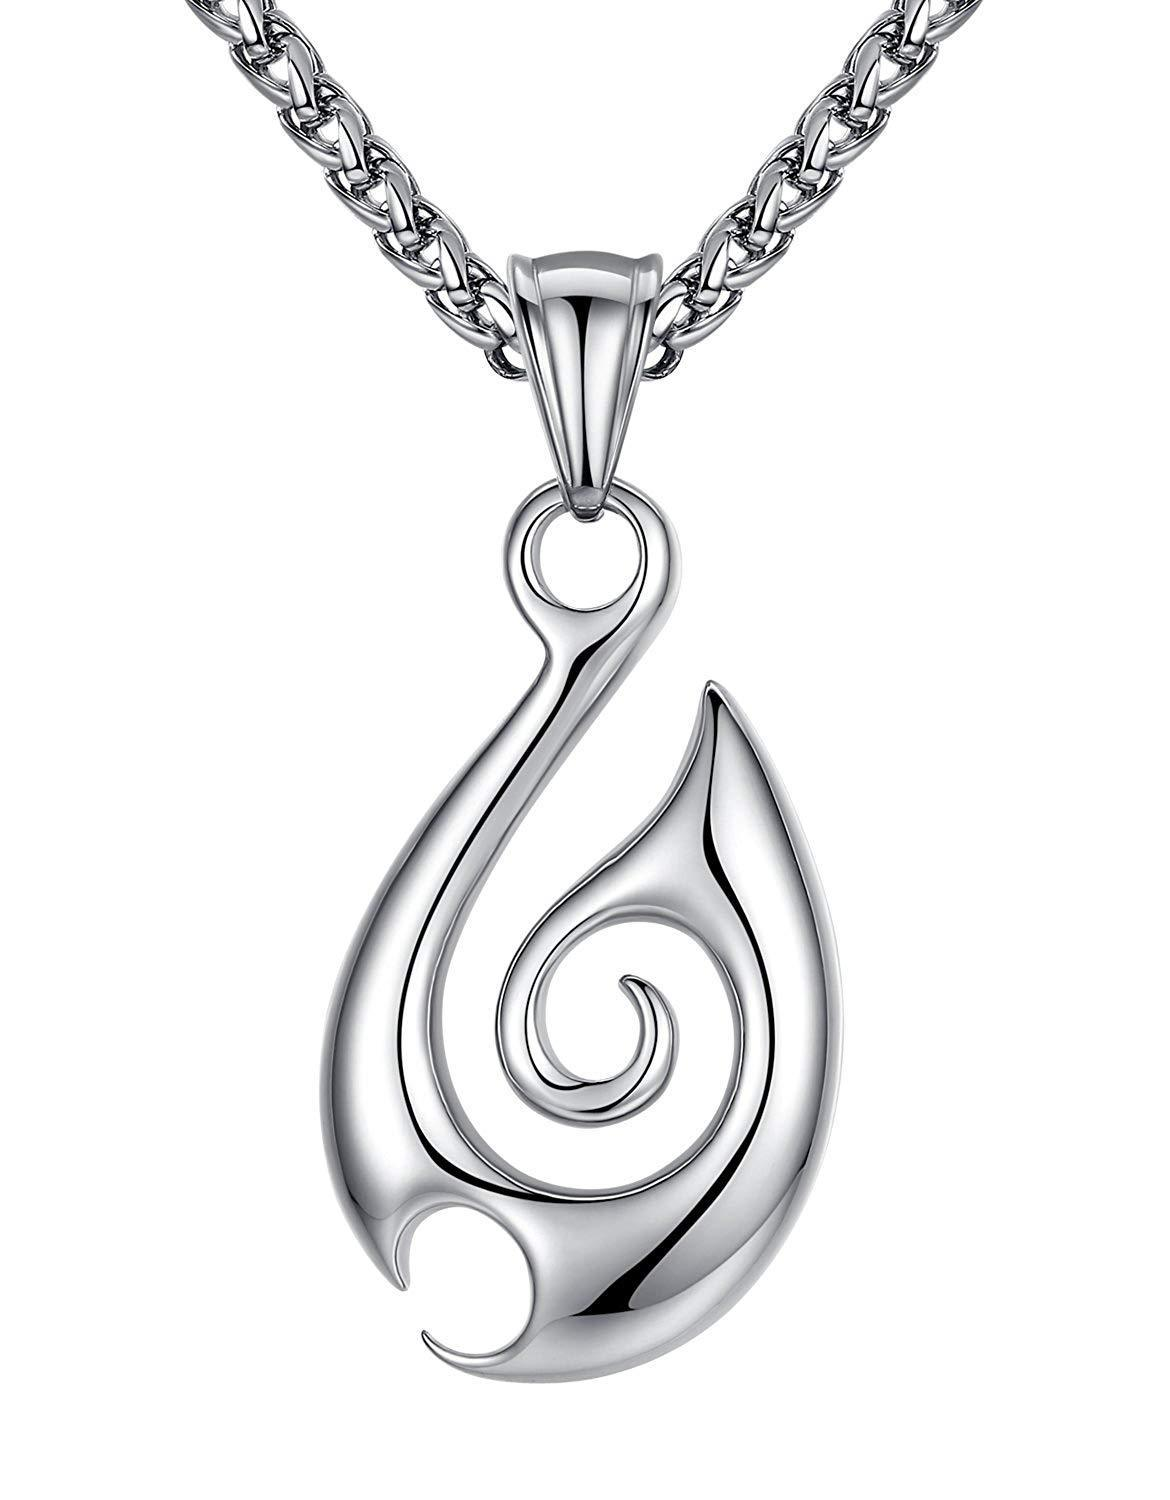 "Aoiy Stainless Steel Tribal Fire Pendant Necklace, Unisex, 24"" Link Chain, aap129"